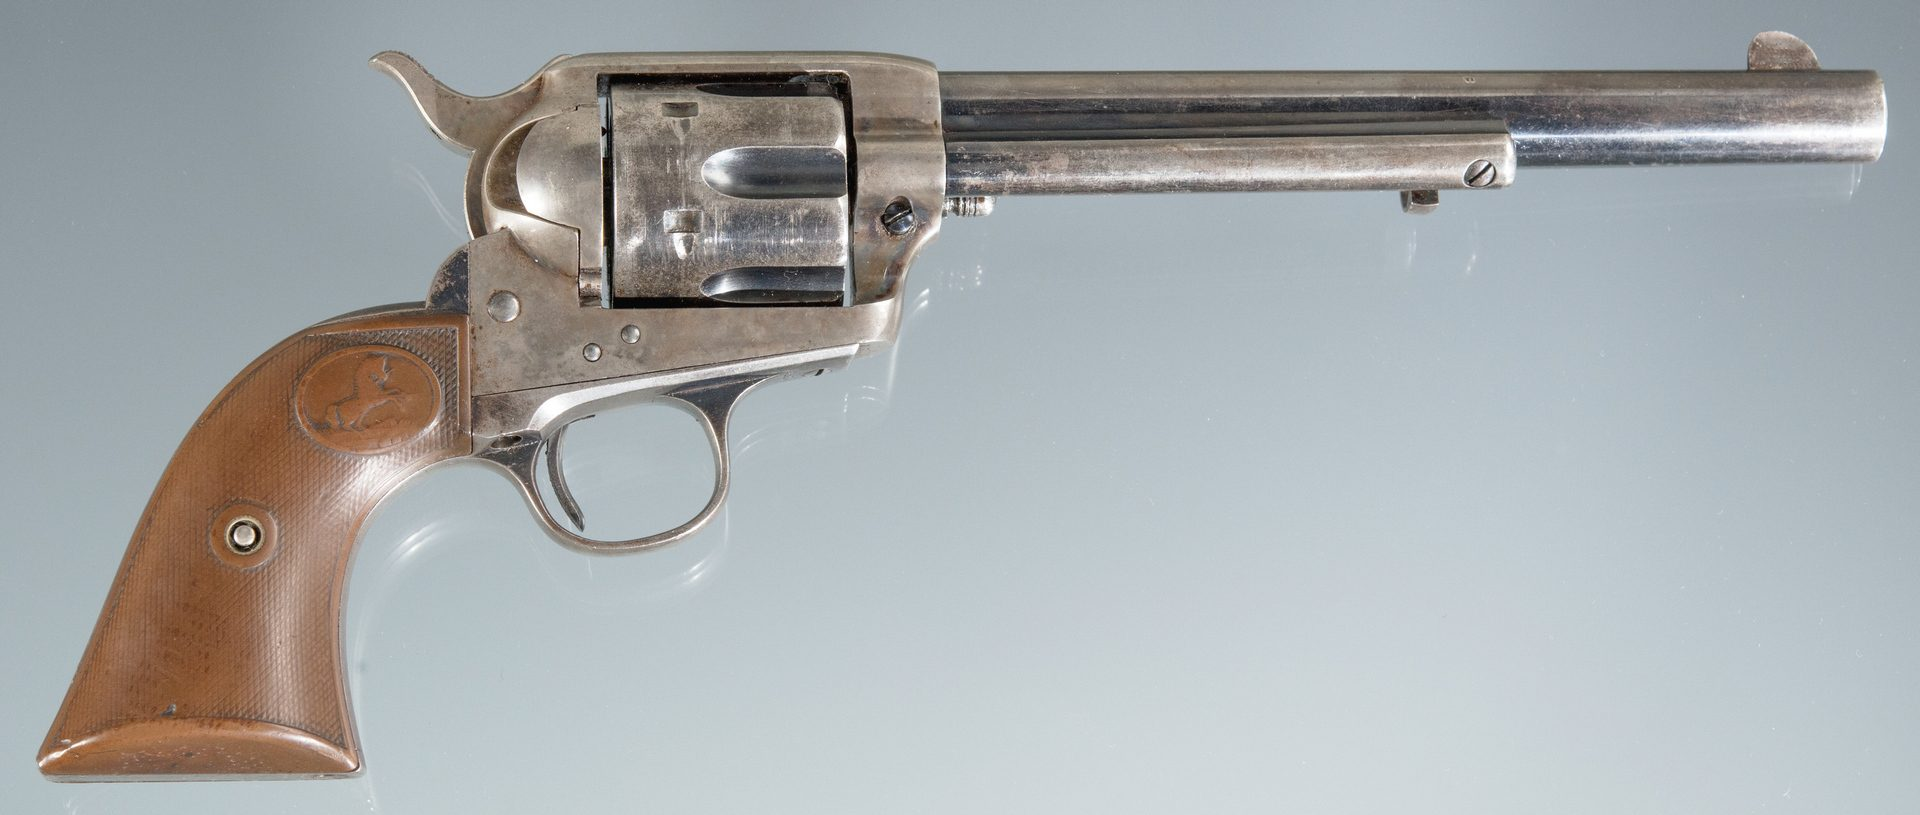 Lot 812: Colt Single Action Army Revolver, 38-40 Win